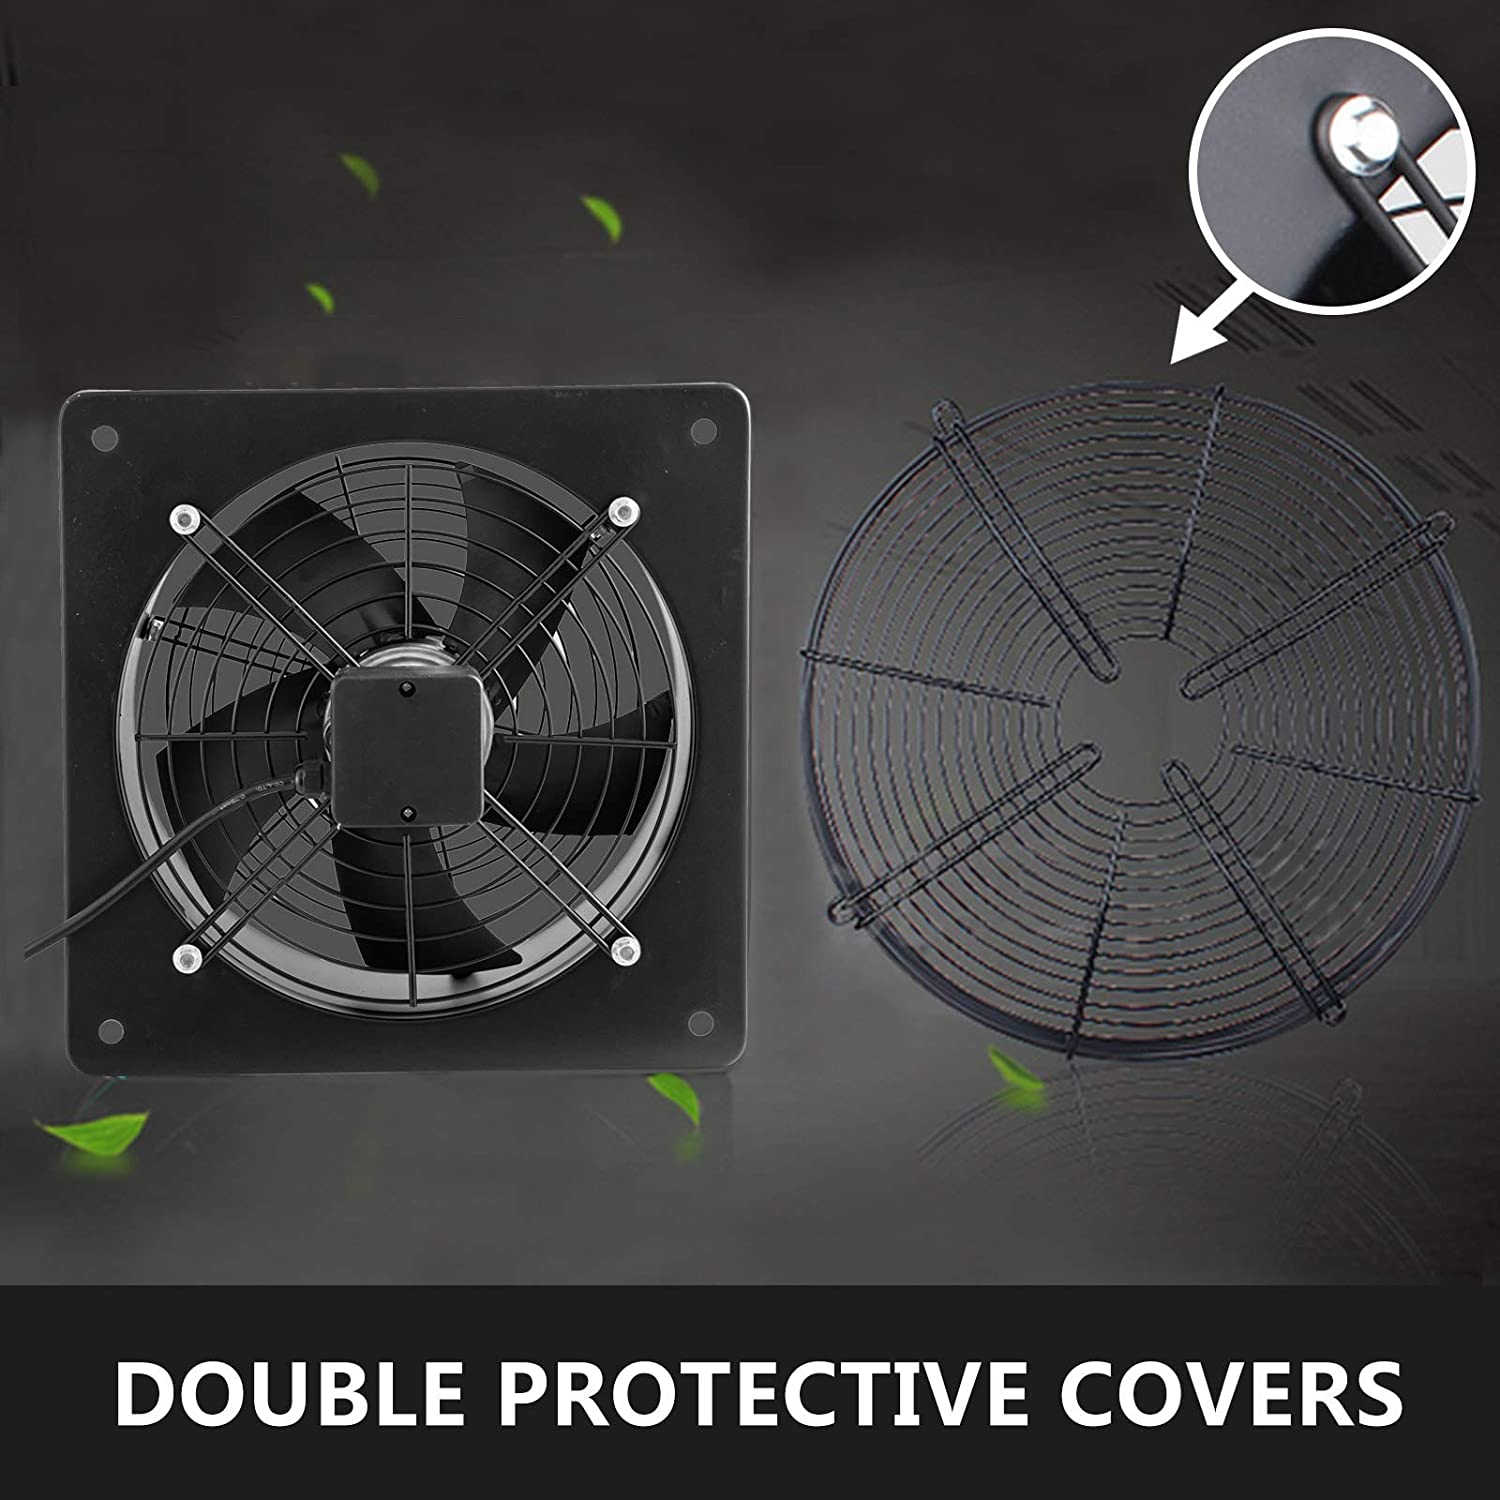 FlowerW Industrial Extractor Metal Axial Exhaust Ventilation Commercial Air Blower Fan 305MM//12 Inches 4 Pole Uter Rotor Fan 2200m3//h for Garage Home Bathroom Kitchen